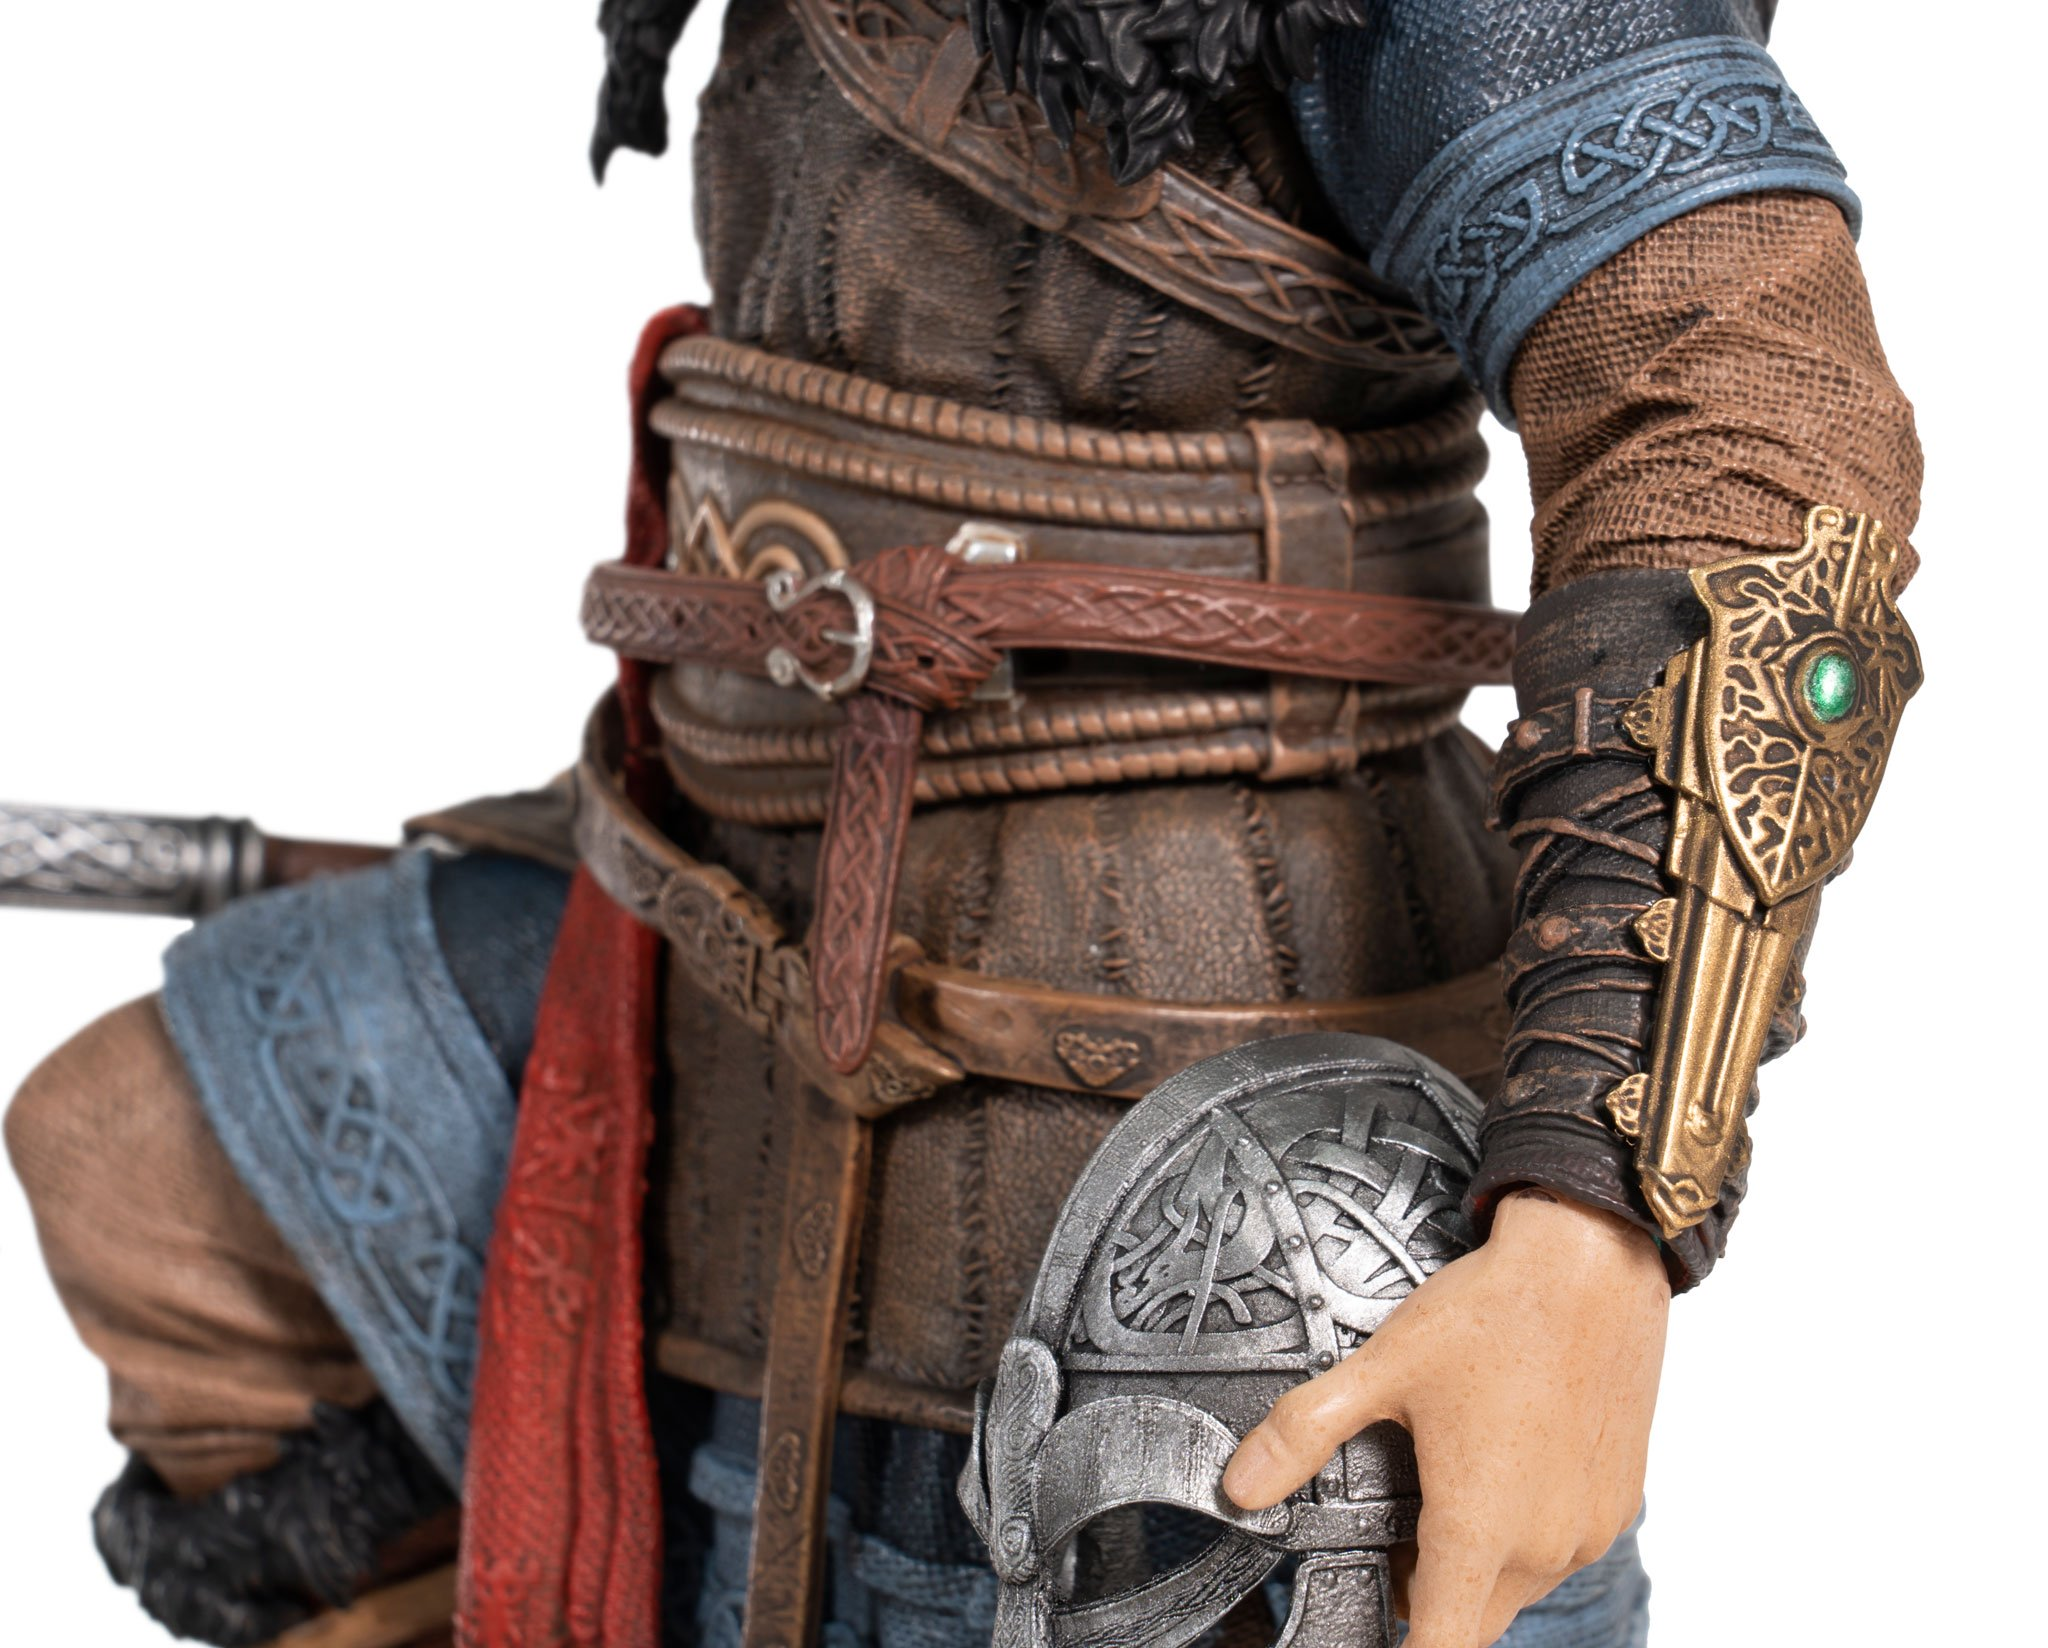 The Ones Who Came Before On Twitter Assassin S Creed Valhalla Eivor The Wolf Kissed Pre Order Now From The Ubisoft Store Uk Https T Co Zlbwm4prng Https T Co Rmwrn5adxg